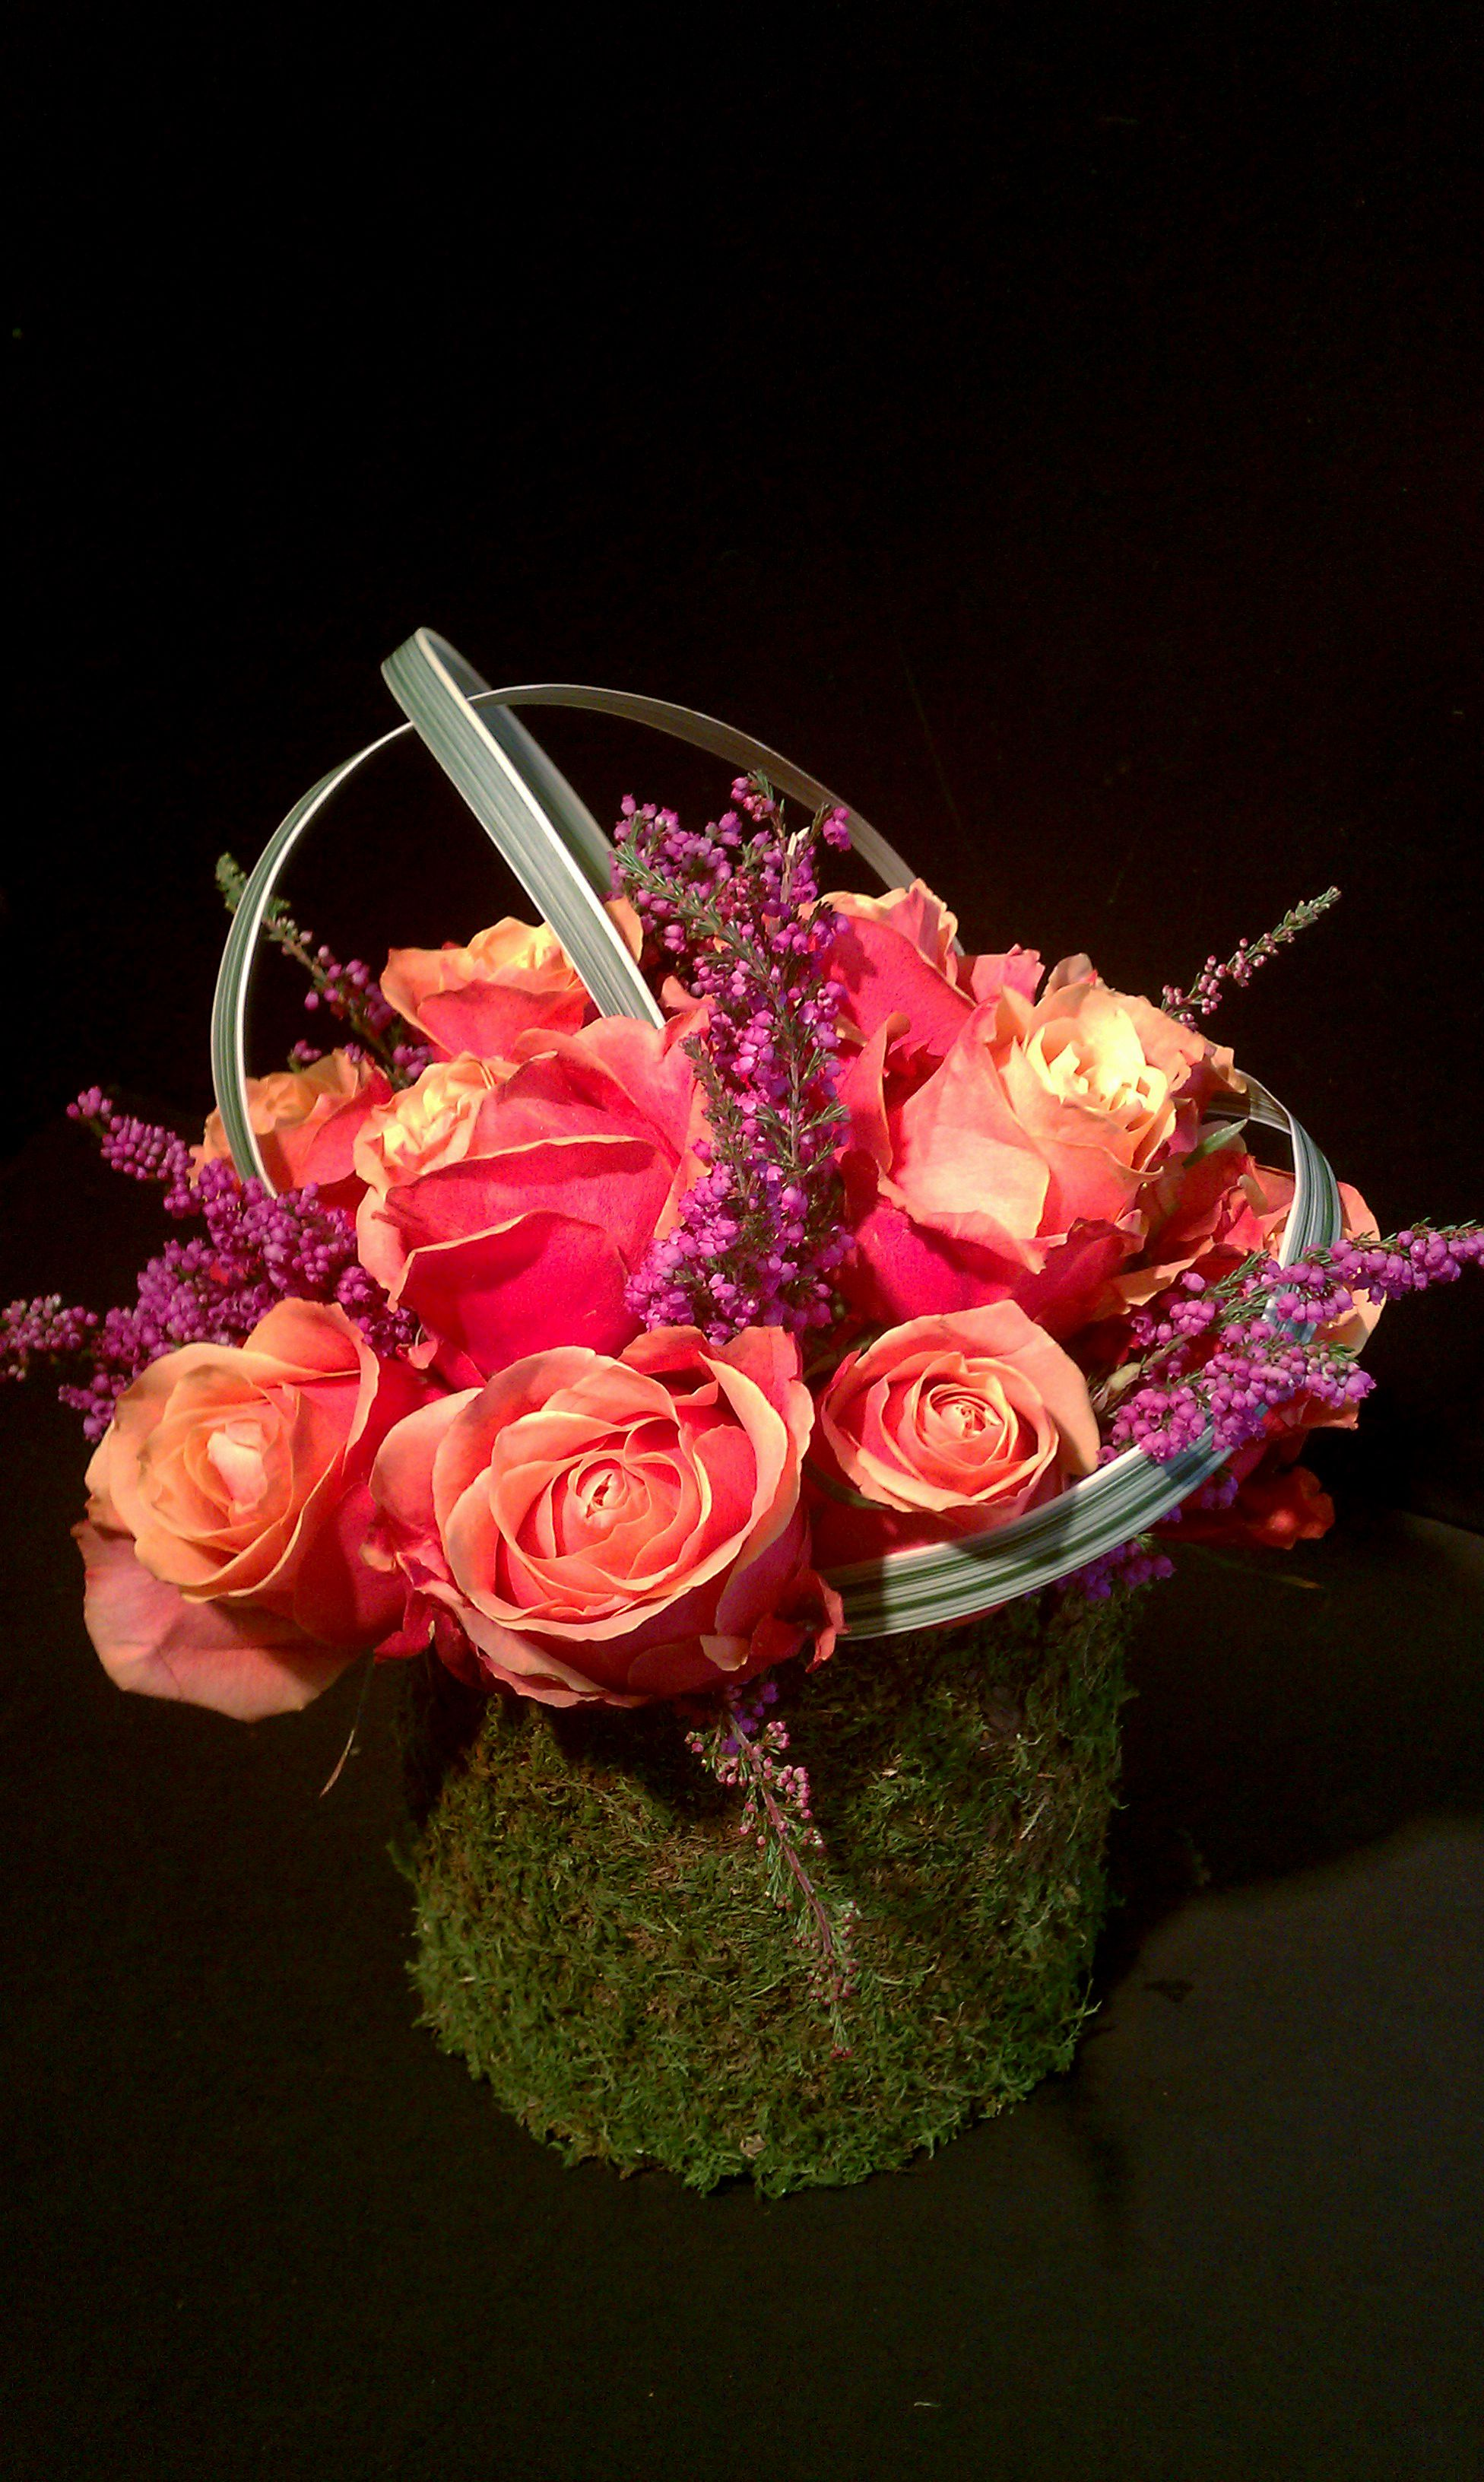 Pin By Zinncinnati At Findlay Market On Floral Artistry Of